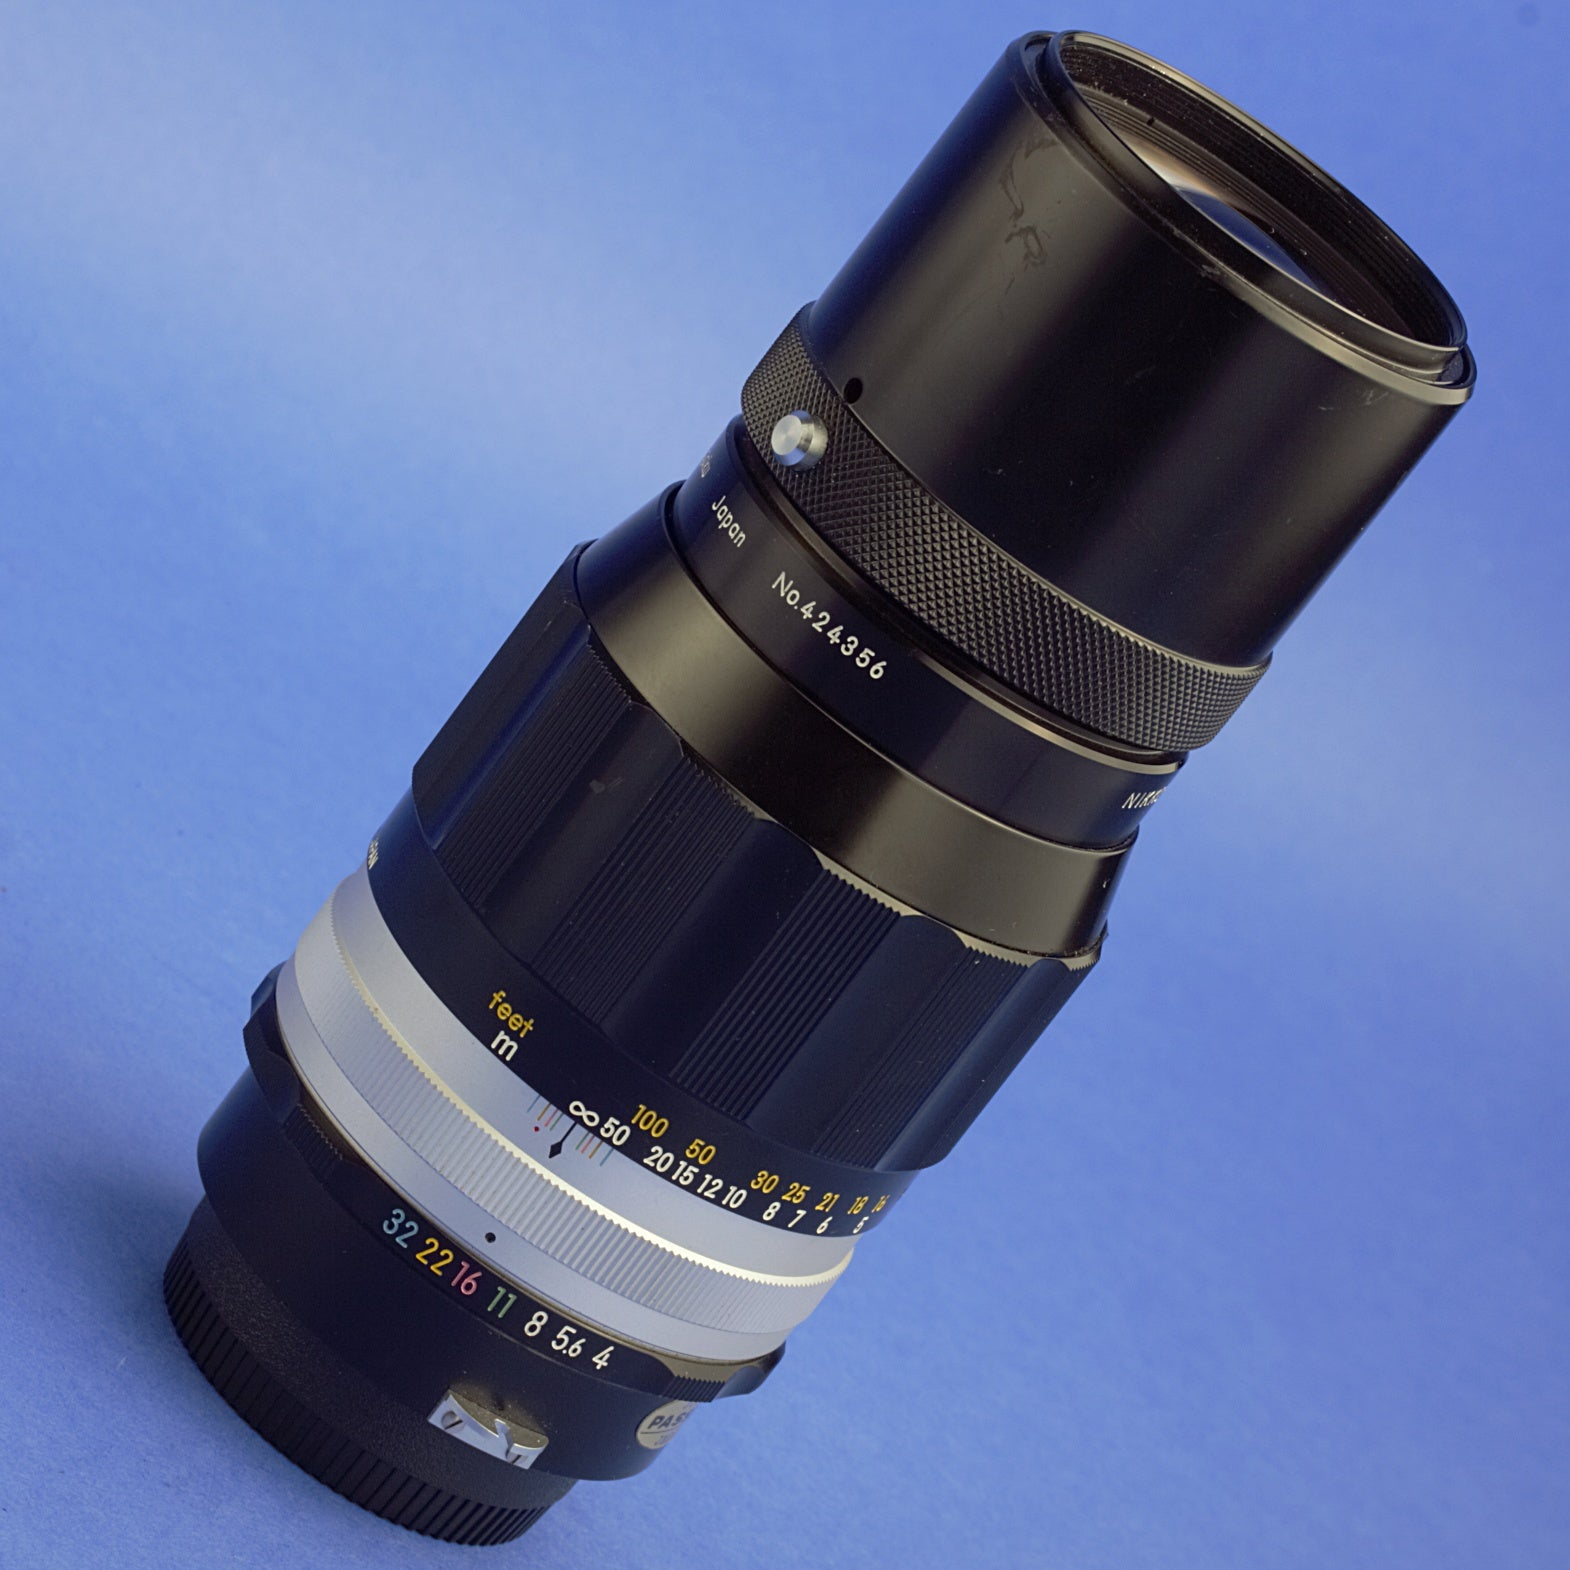 Nikon Nikkor 200mm F4 Non-Ai Lens Beautiful Condition